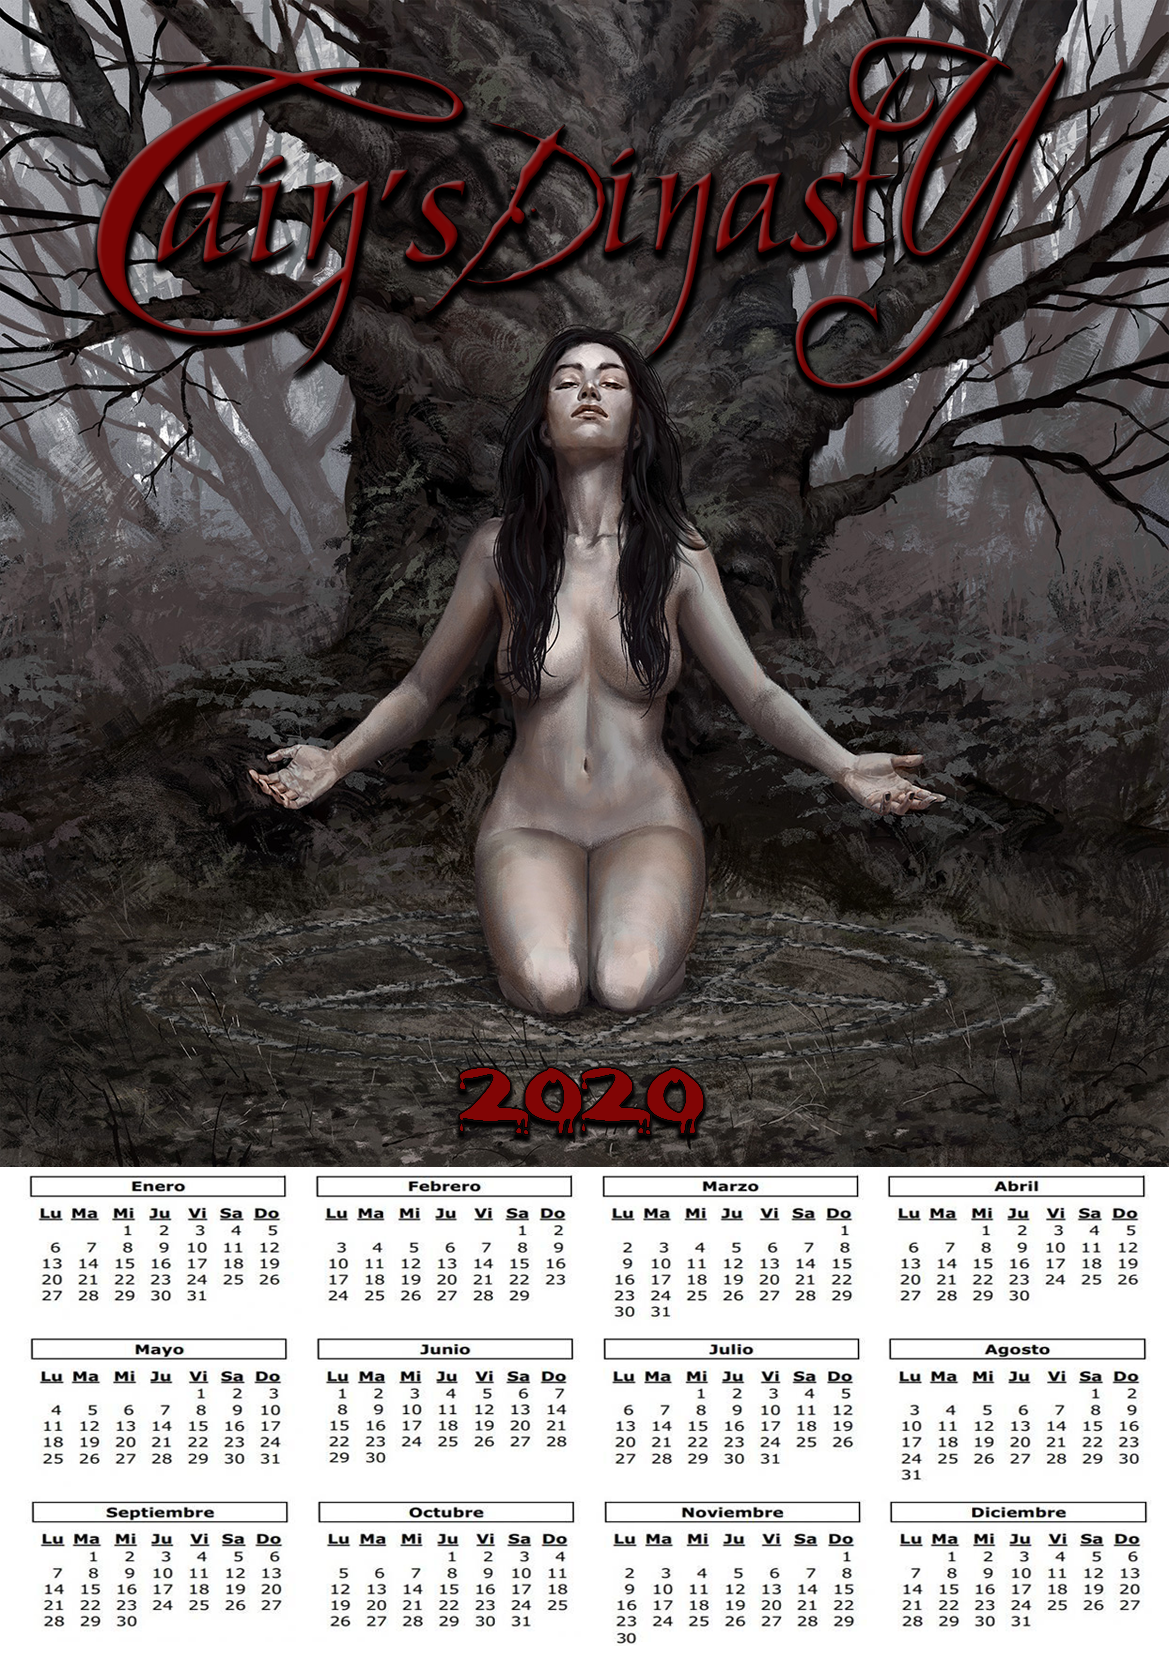 Calendario Cain's Dinnasty eva 2020